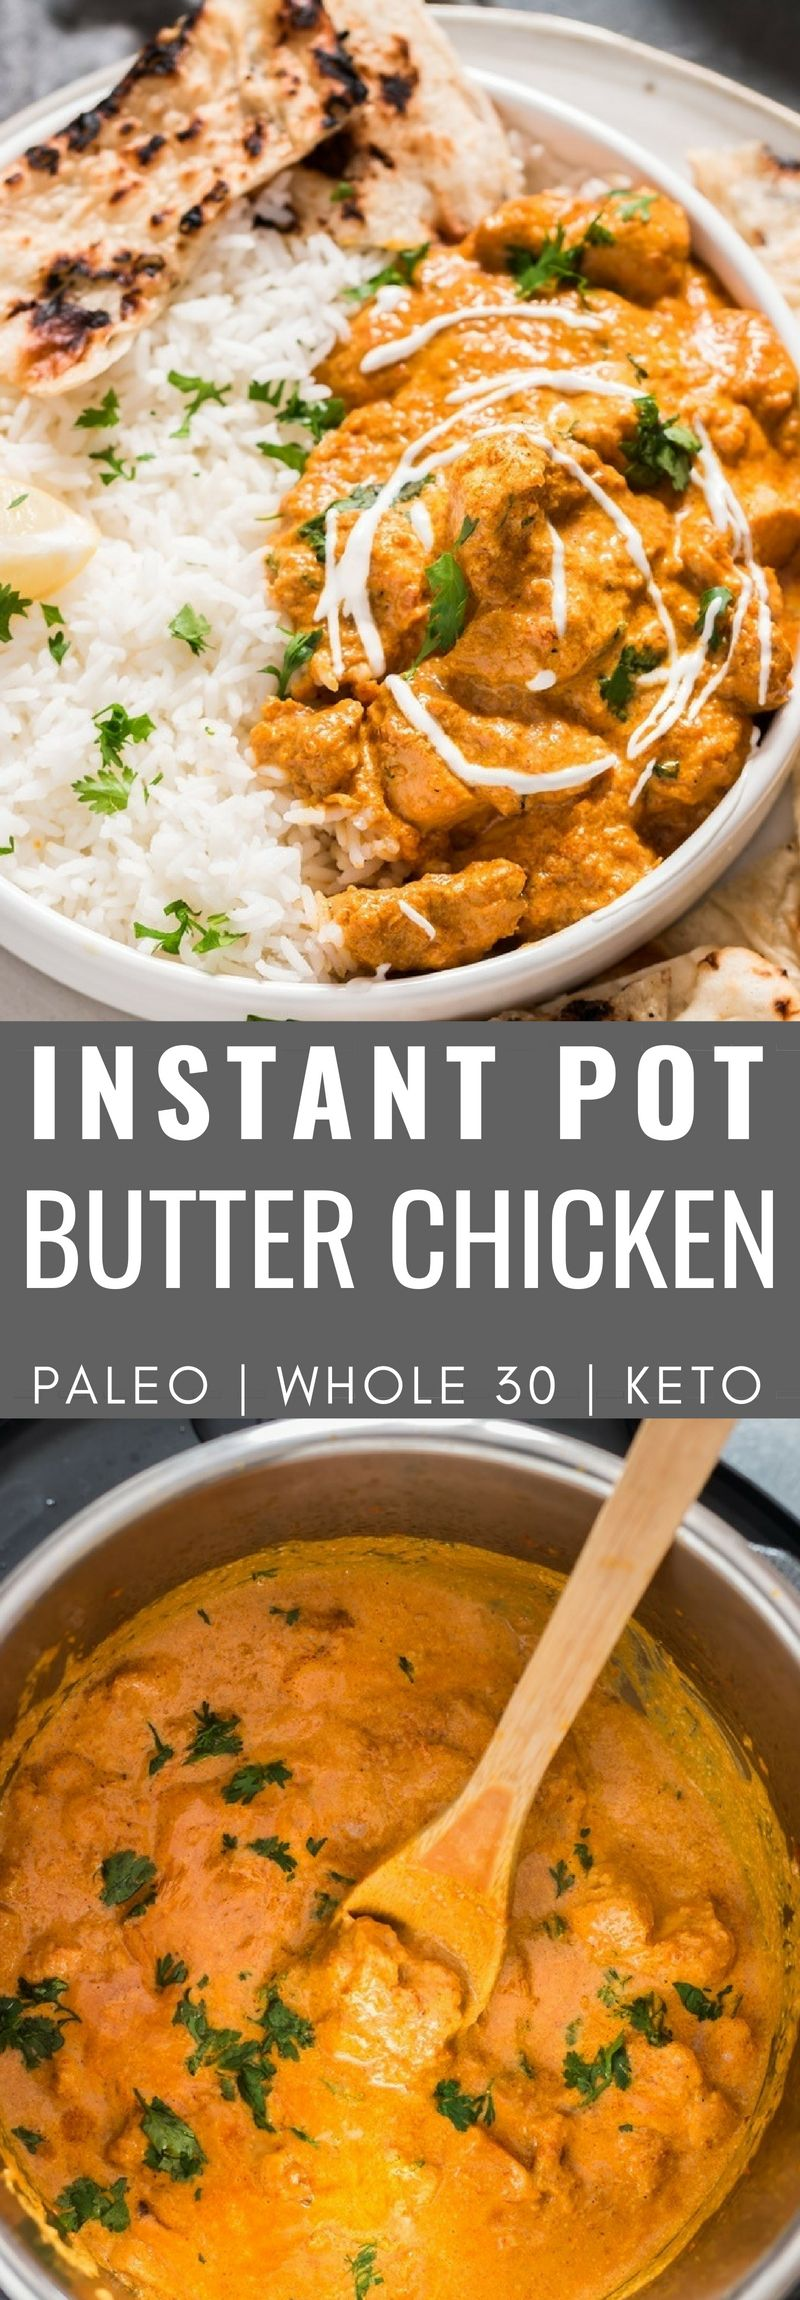 Instant Pot Butter Chicken images